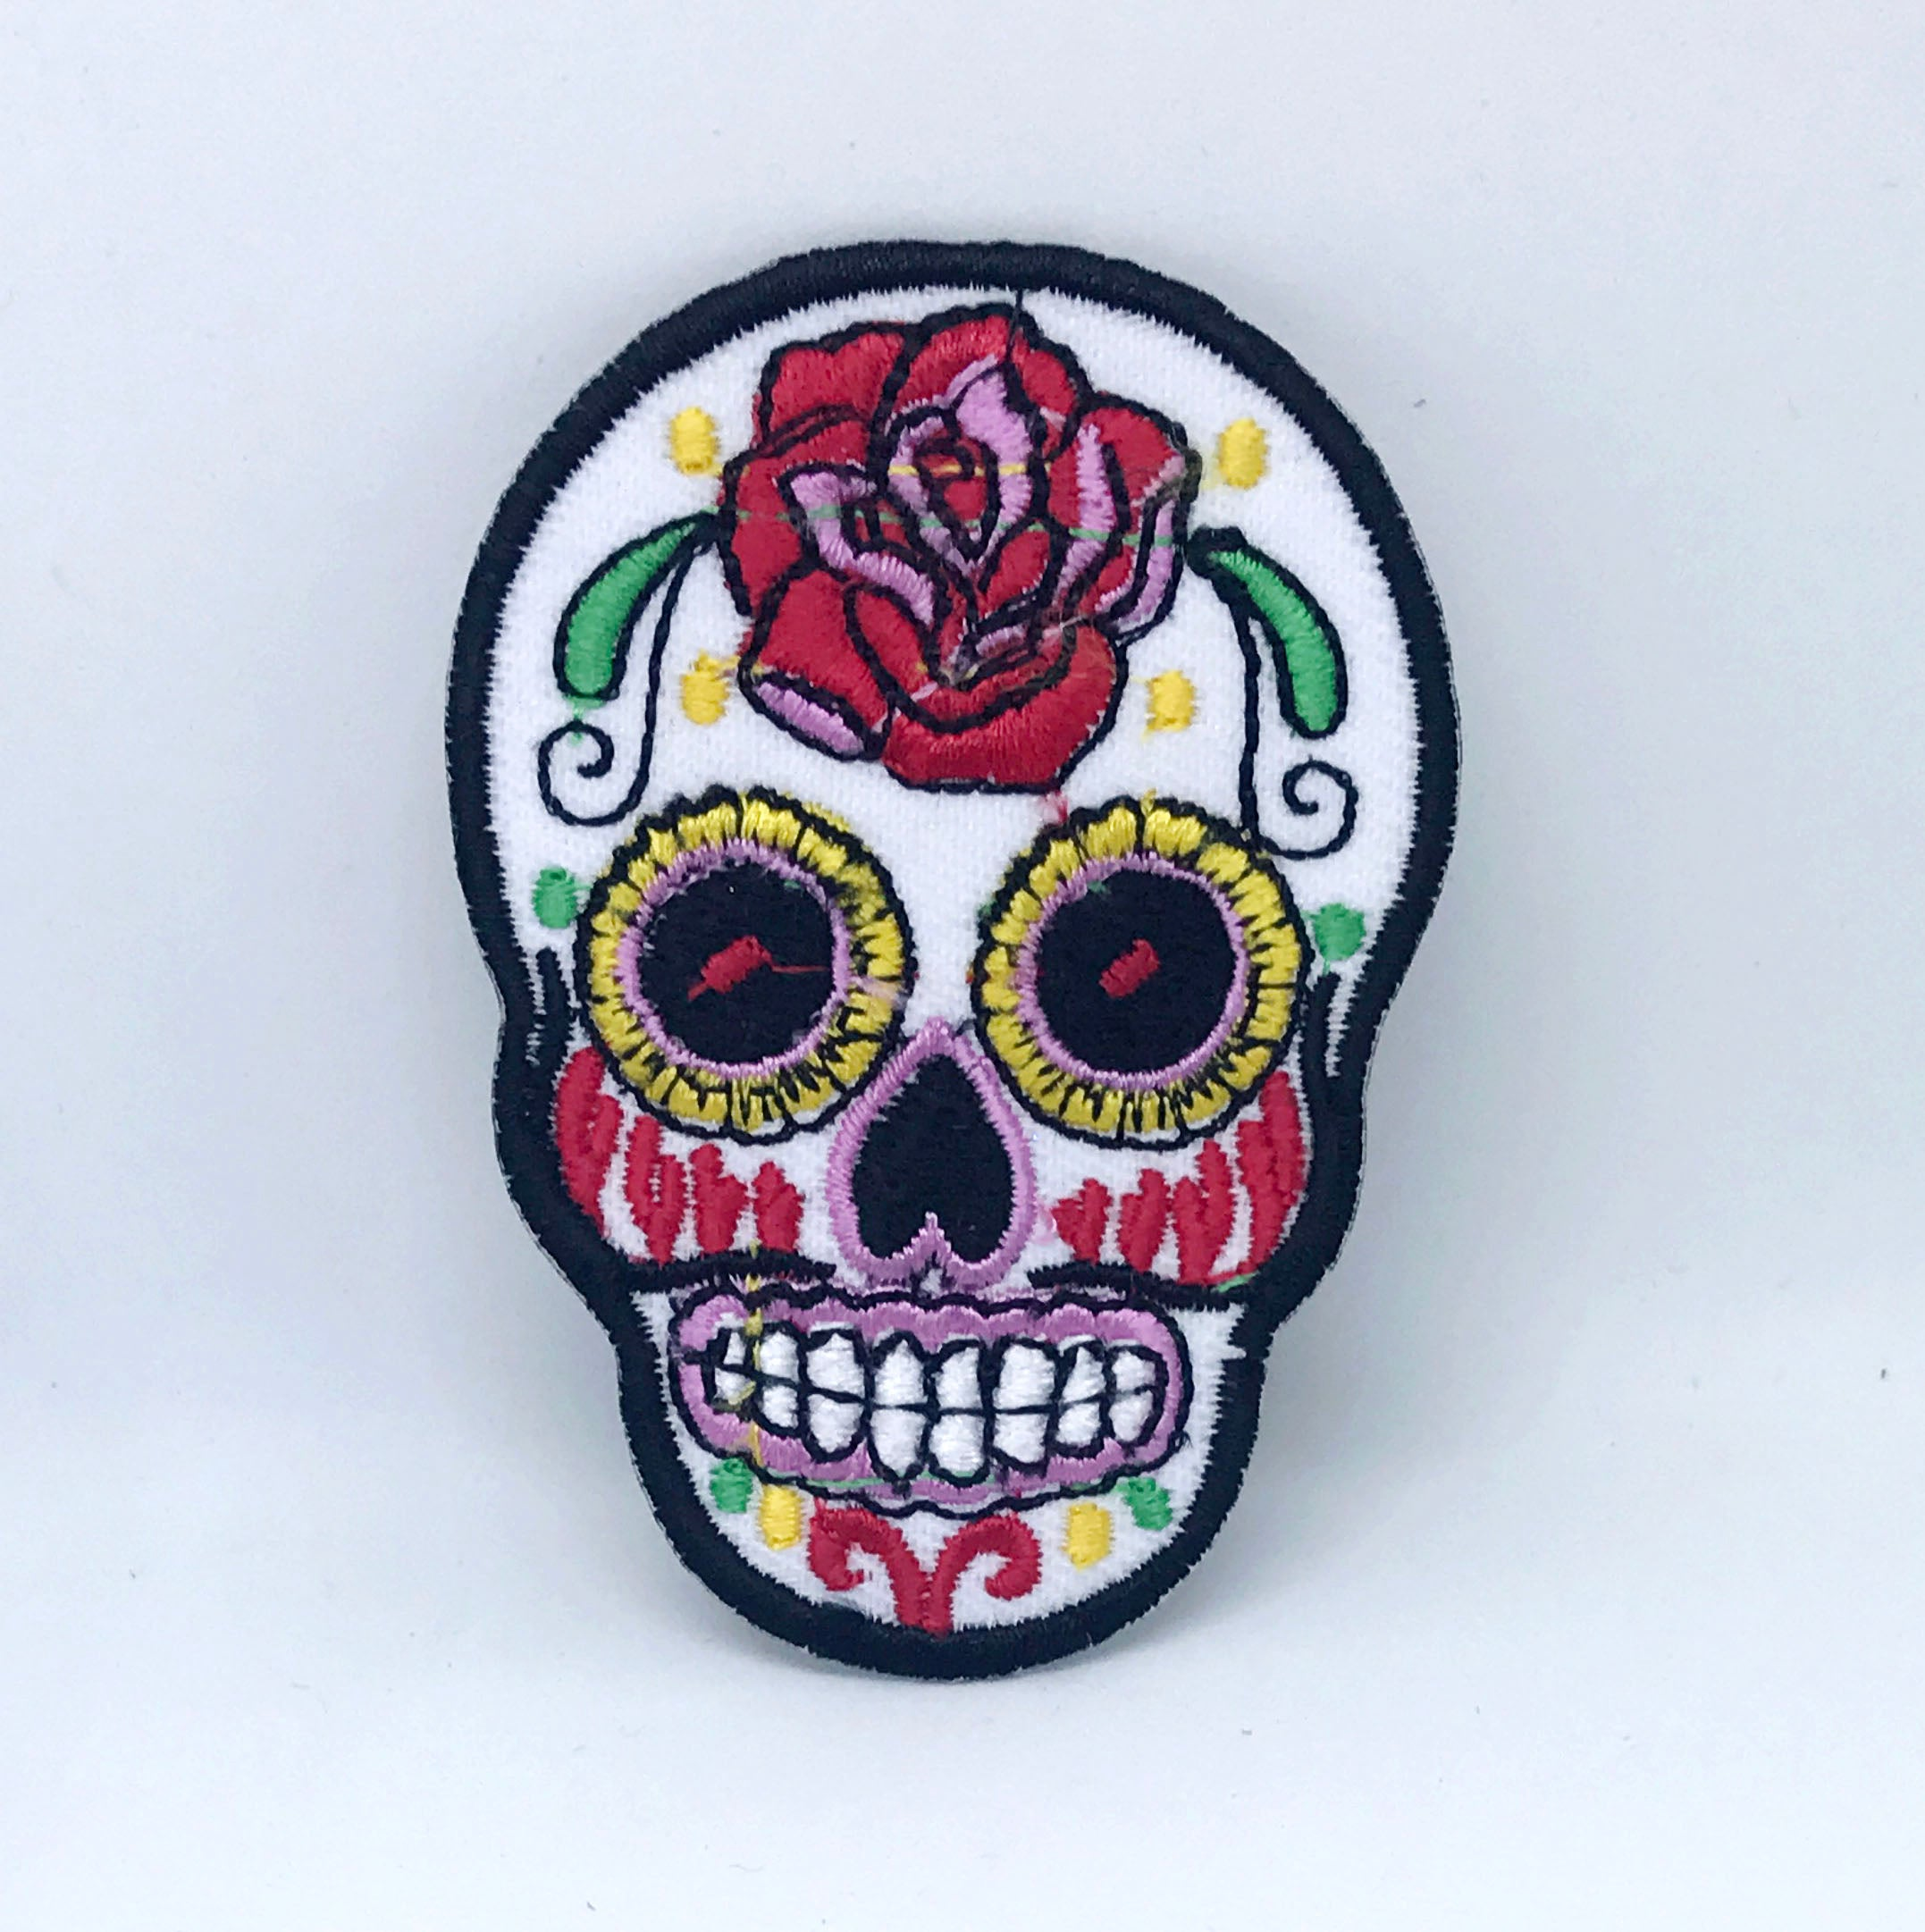 Rose Skeleton Sugar Skull Day of the Dead Mexico Iron on Sew on Embroidered Patch